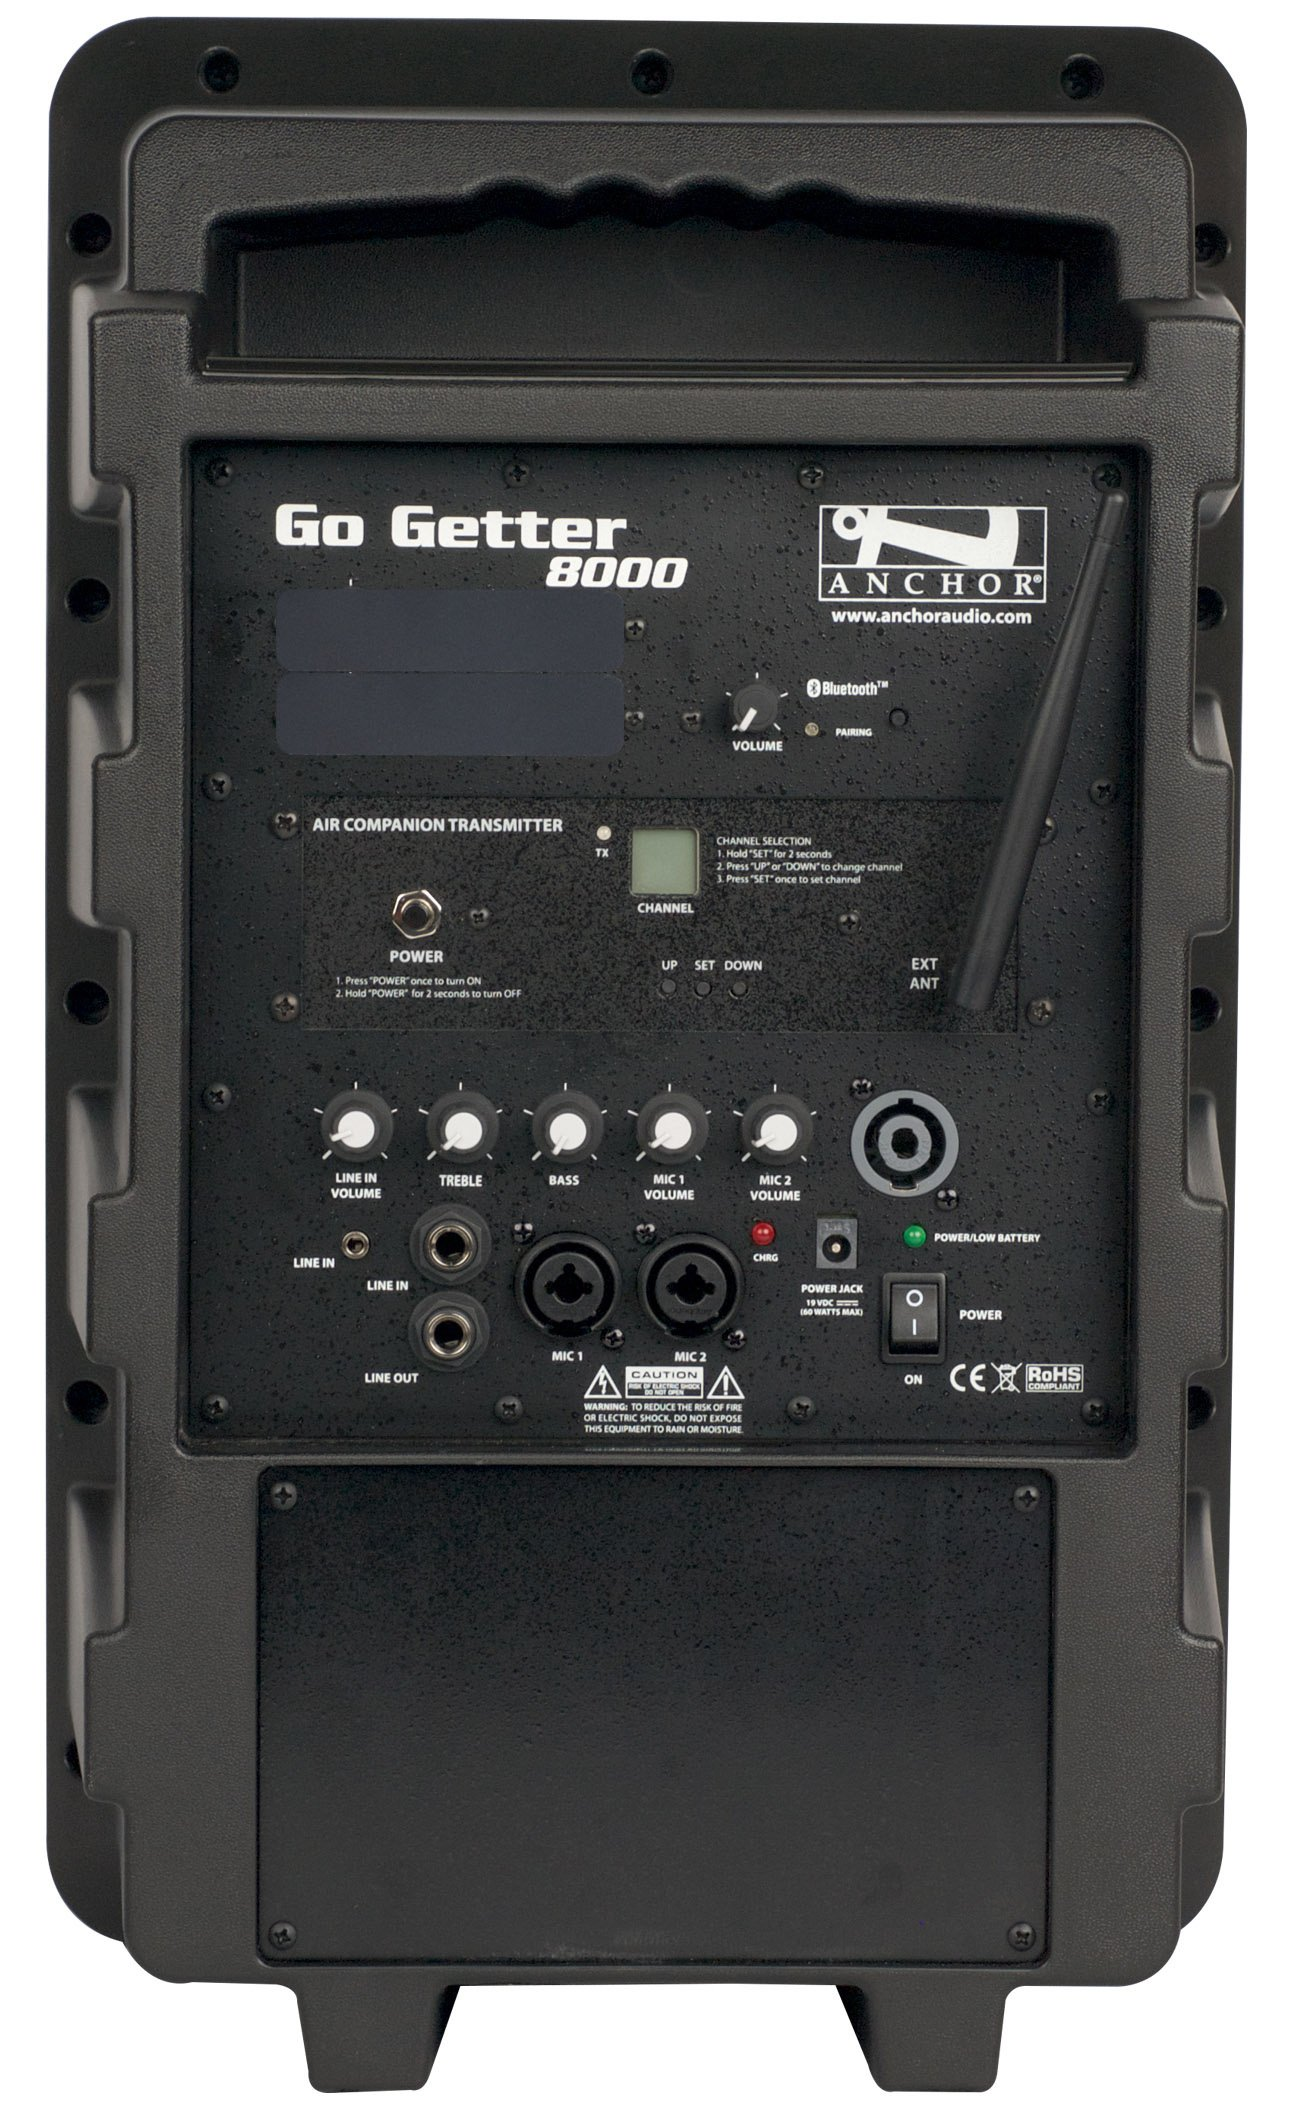 Go Getter with Two Wireless Receivers and One AIR Wireless Companion Transmitter